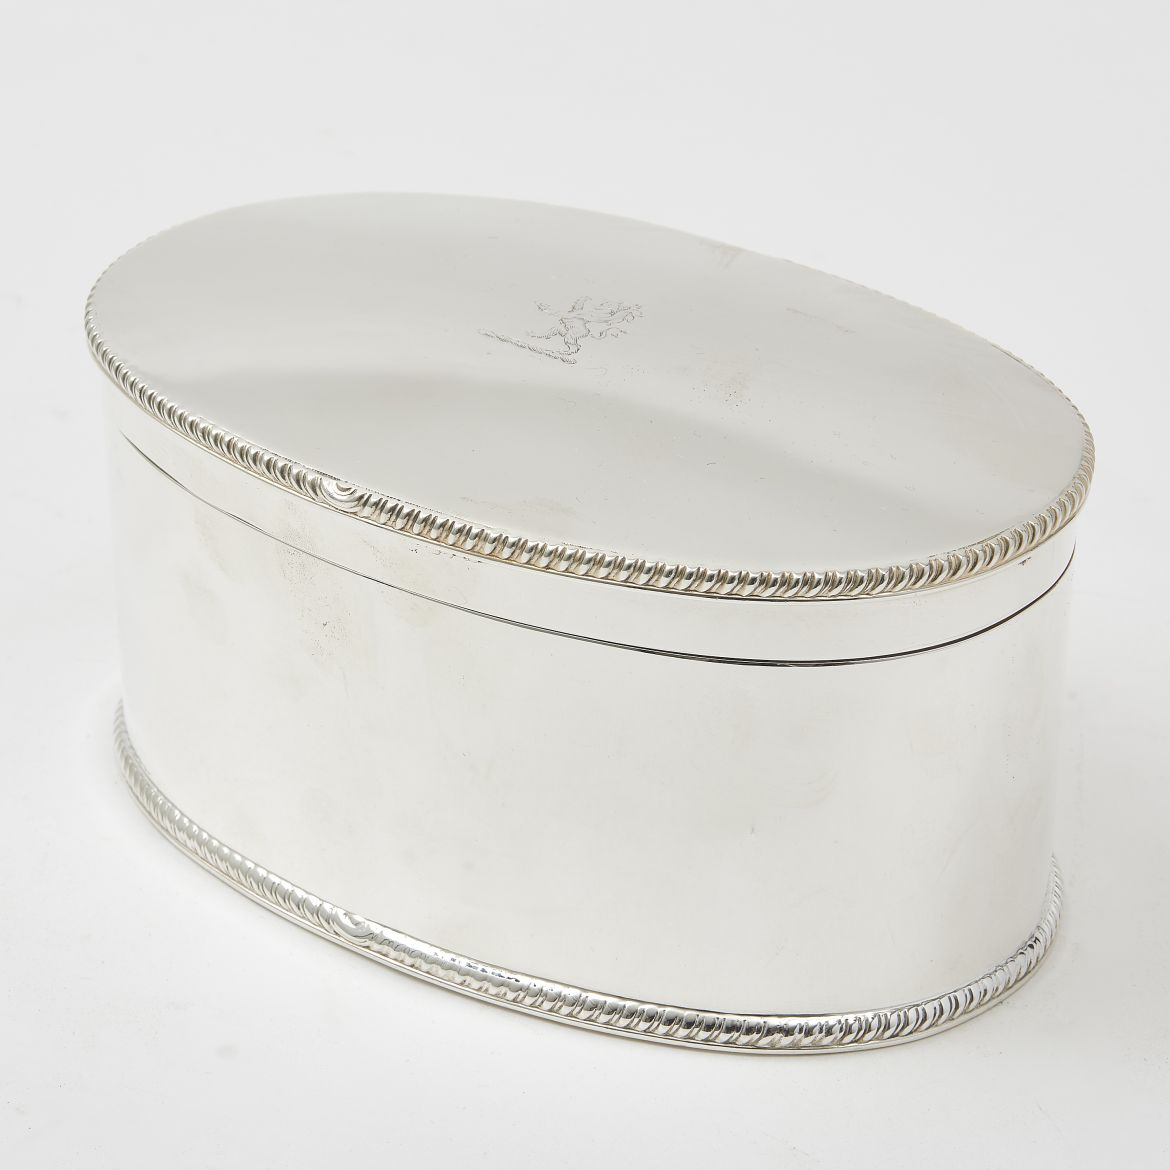 Edwardian Silver Plate Box With Lion Crest